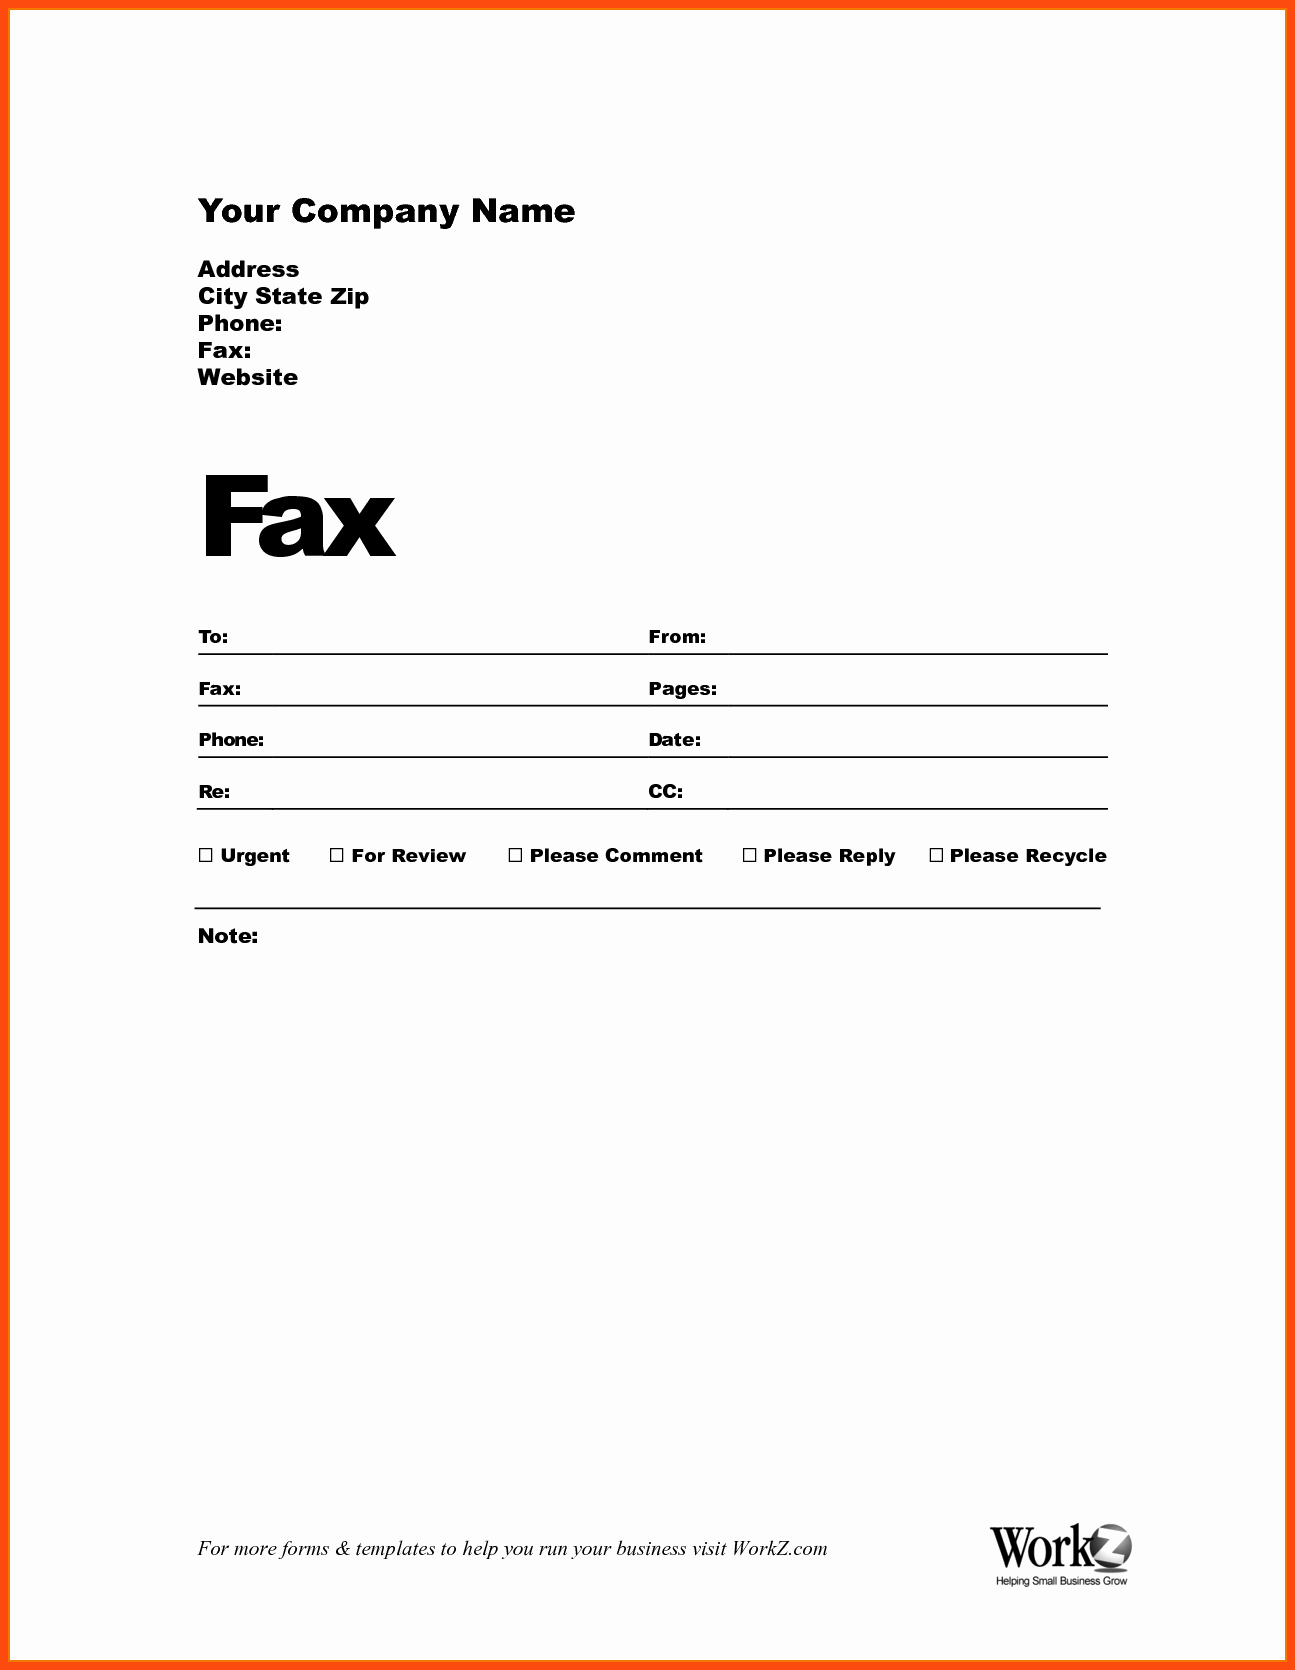 Printable Free Fax Cover Sheets Unique How to Fill Out A Fax Cover Sheet